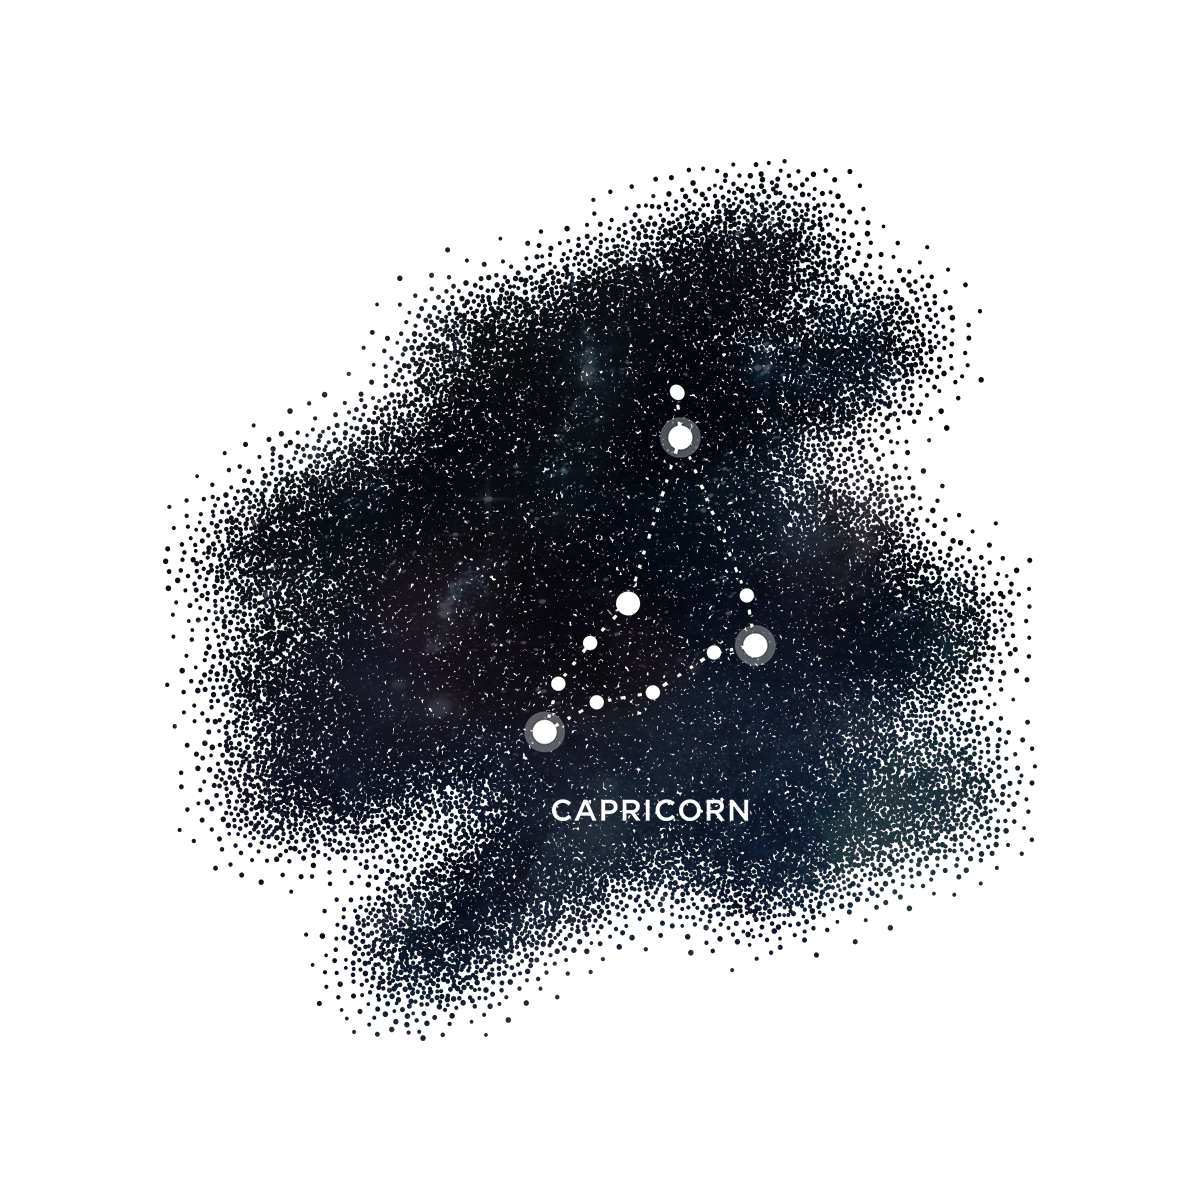 Capricorn - Forecasts and horoscopes